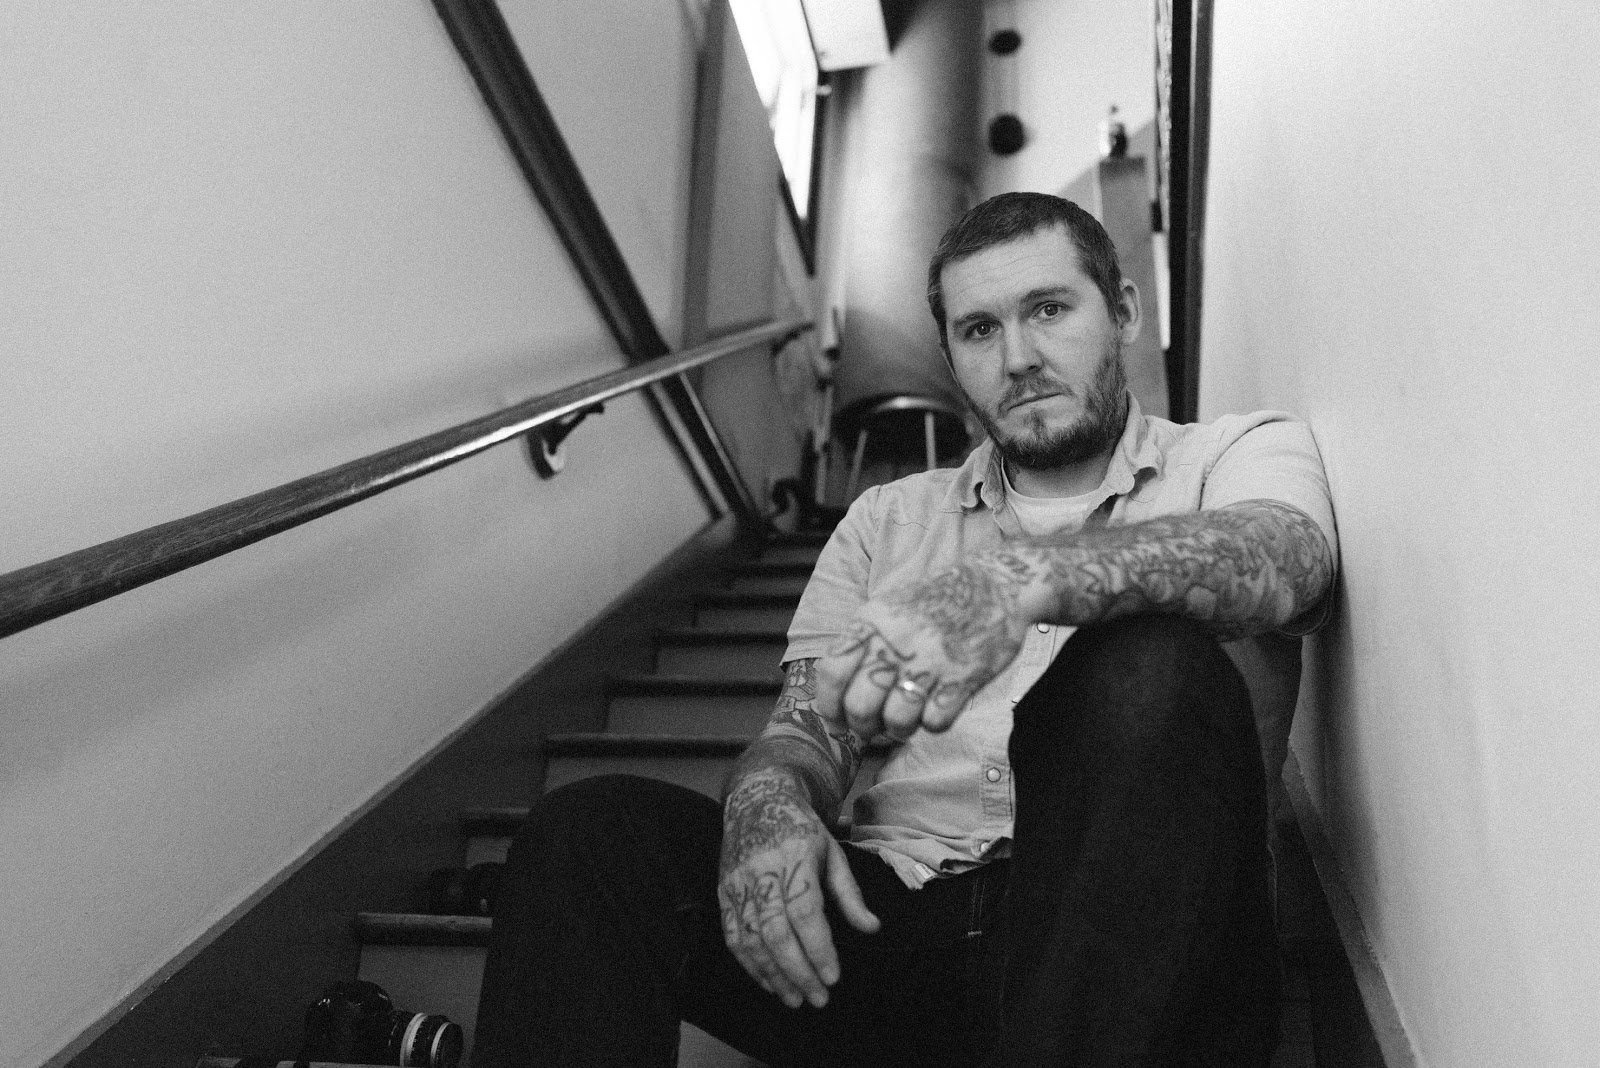 BRIAN FALLON reveals new music video for '21 Days' - Watch Now